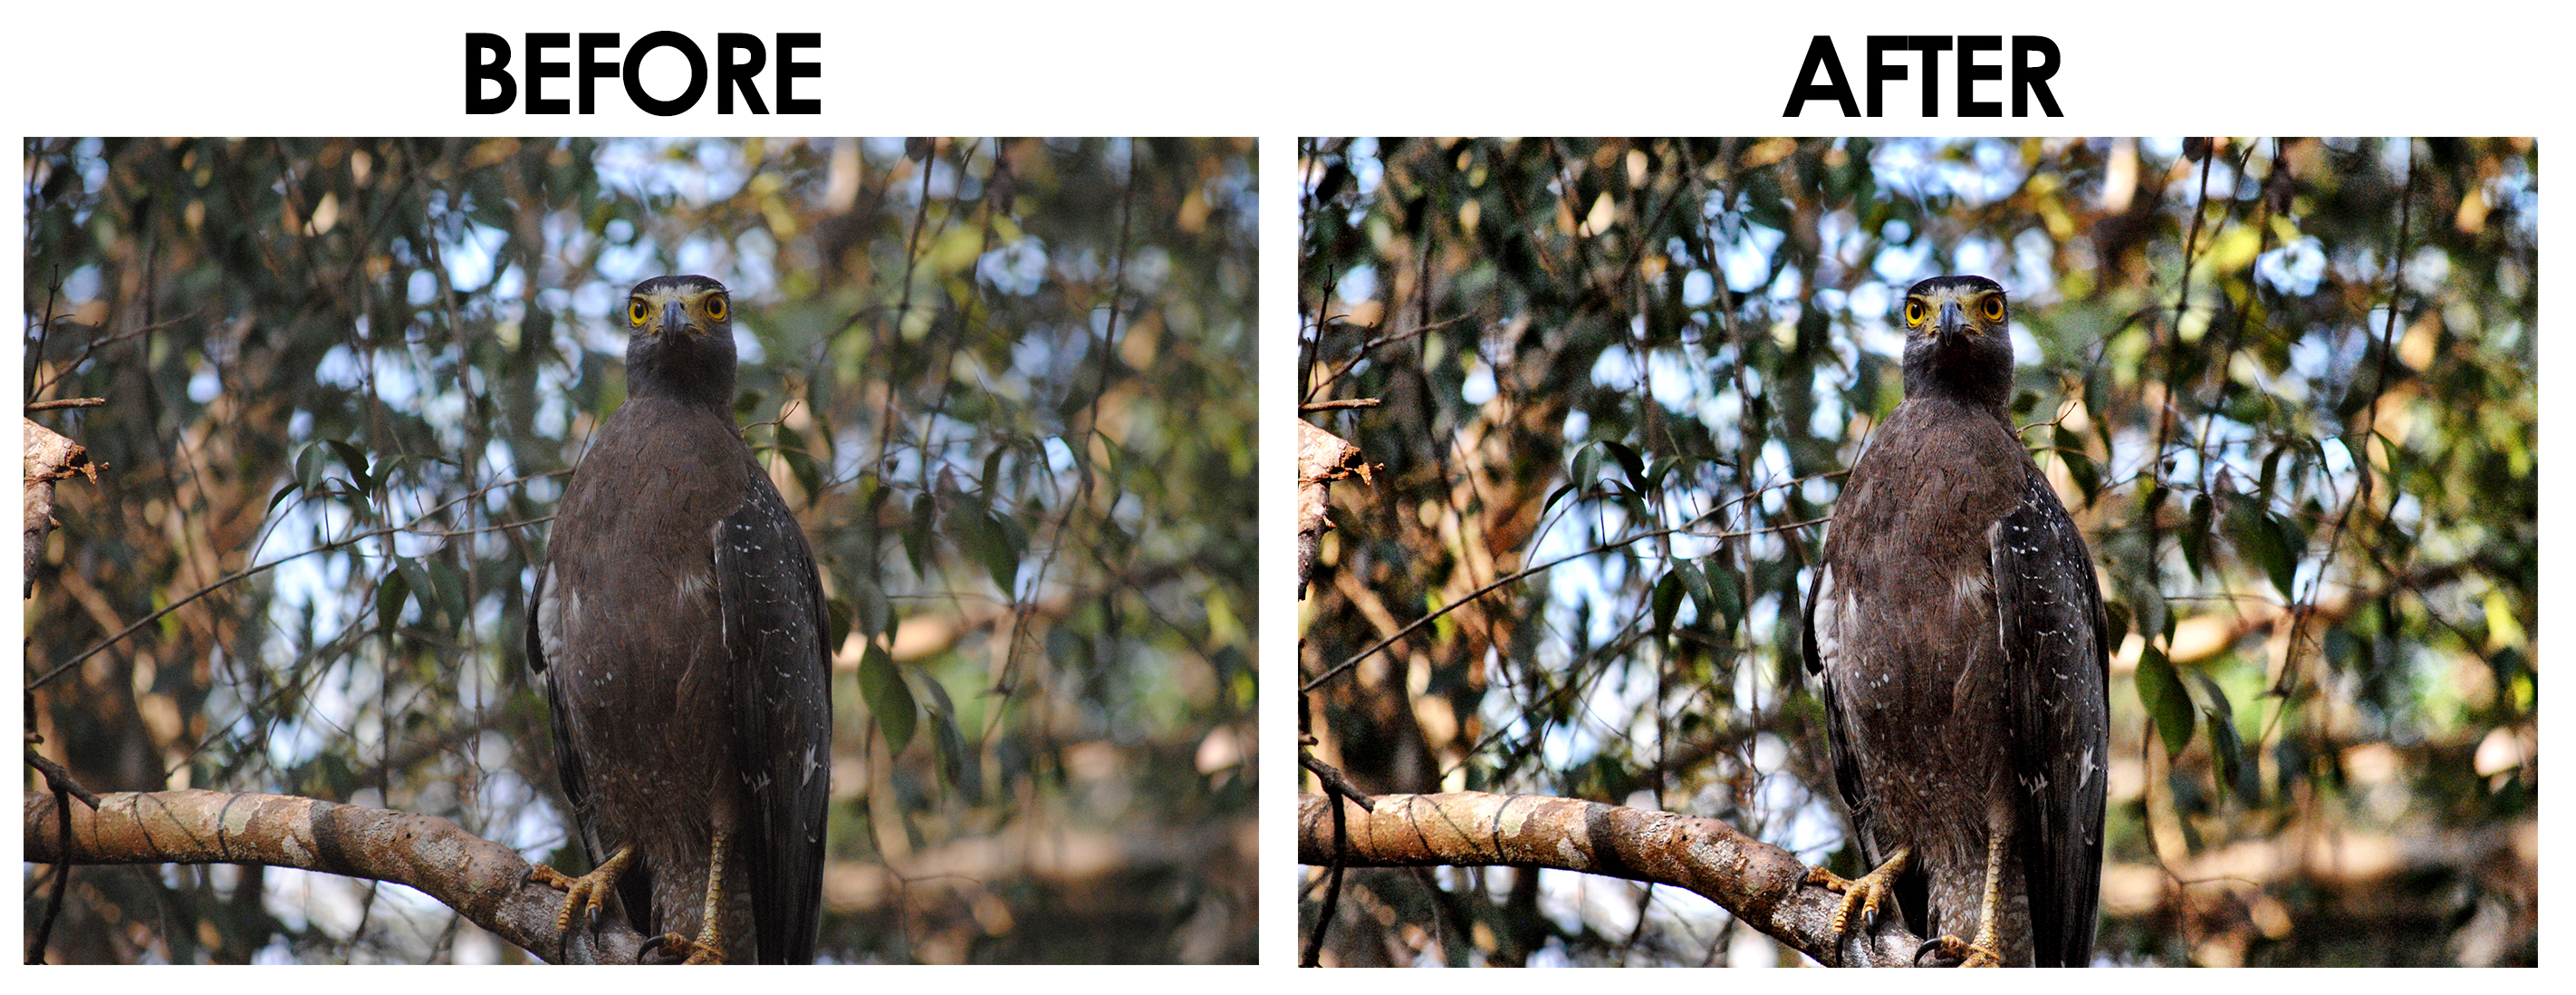 Serpent Eagle Before and After - Camera+ Photo App